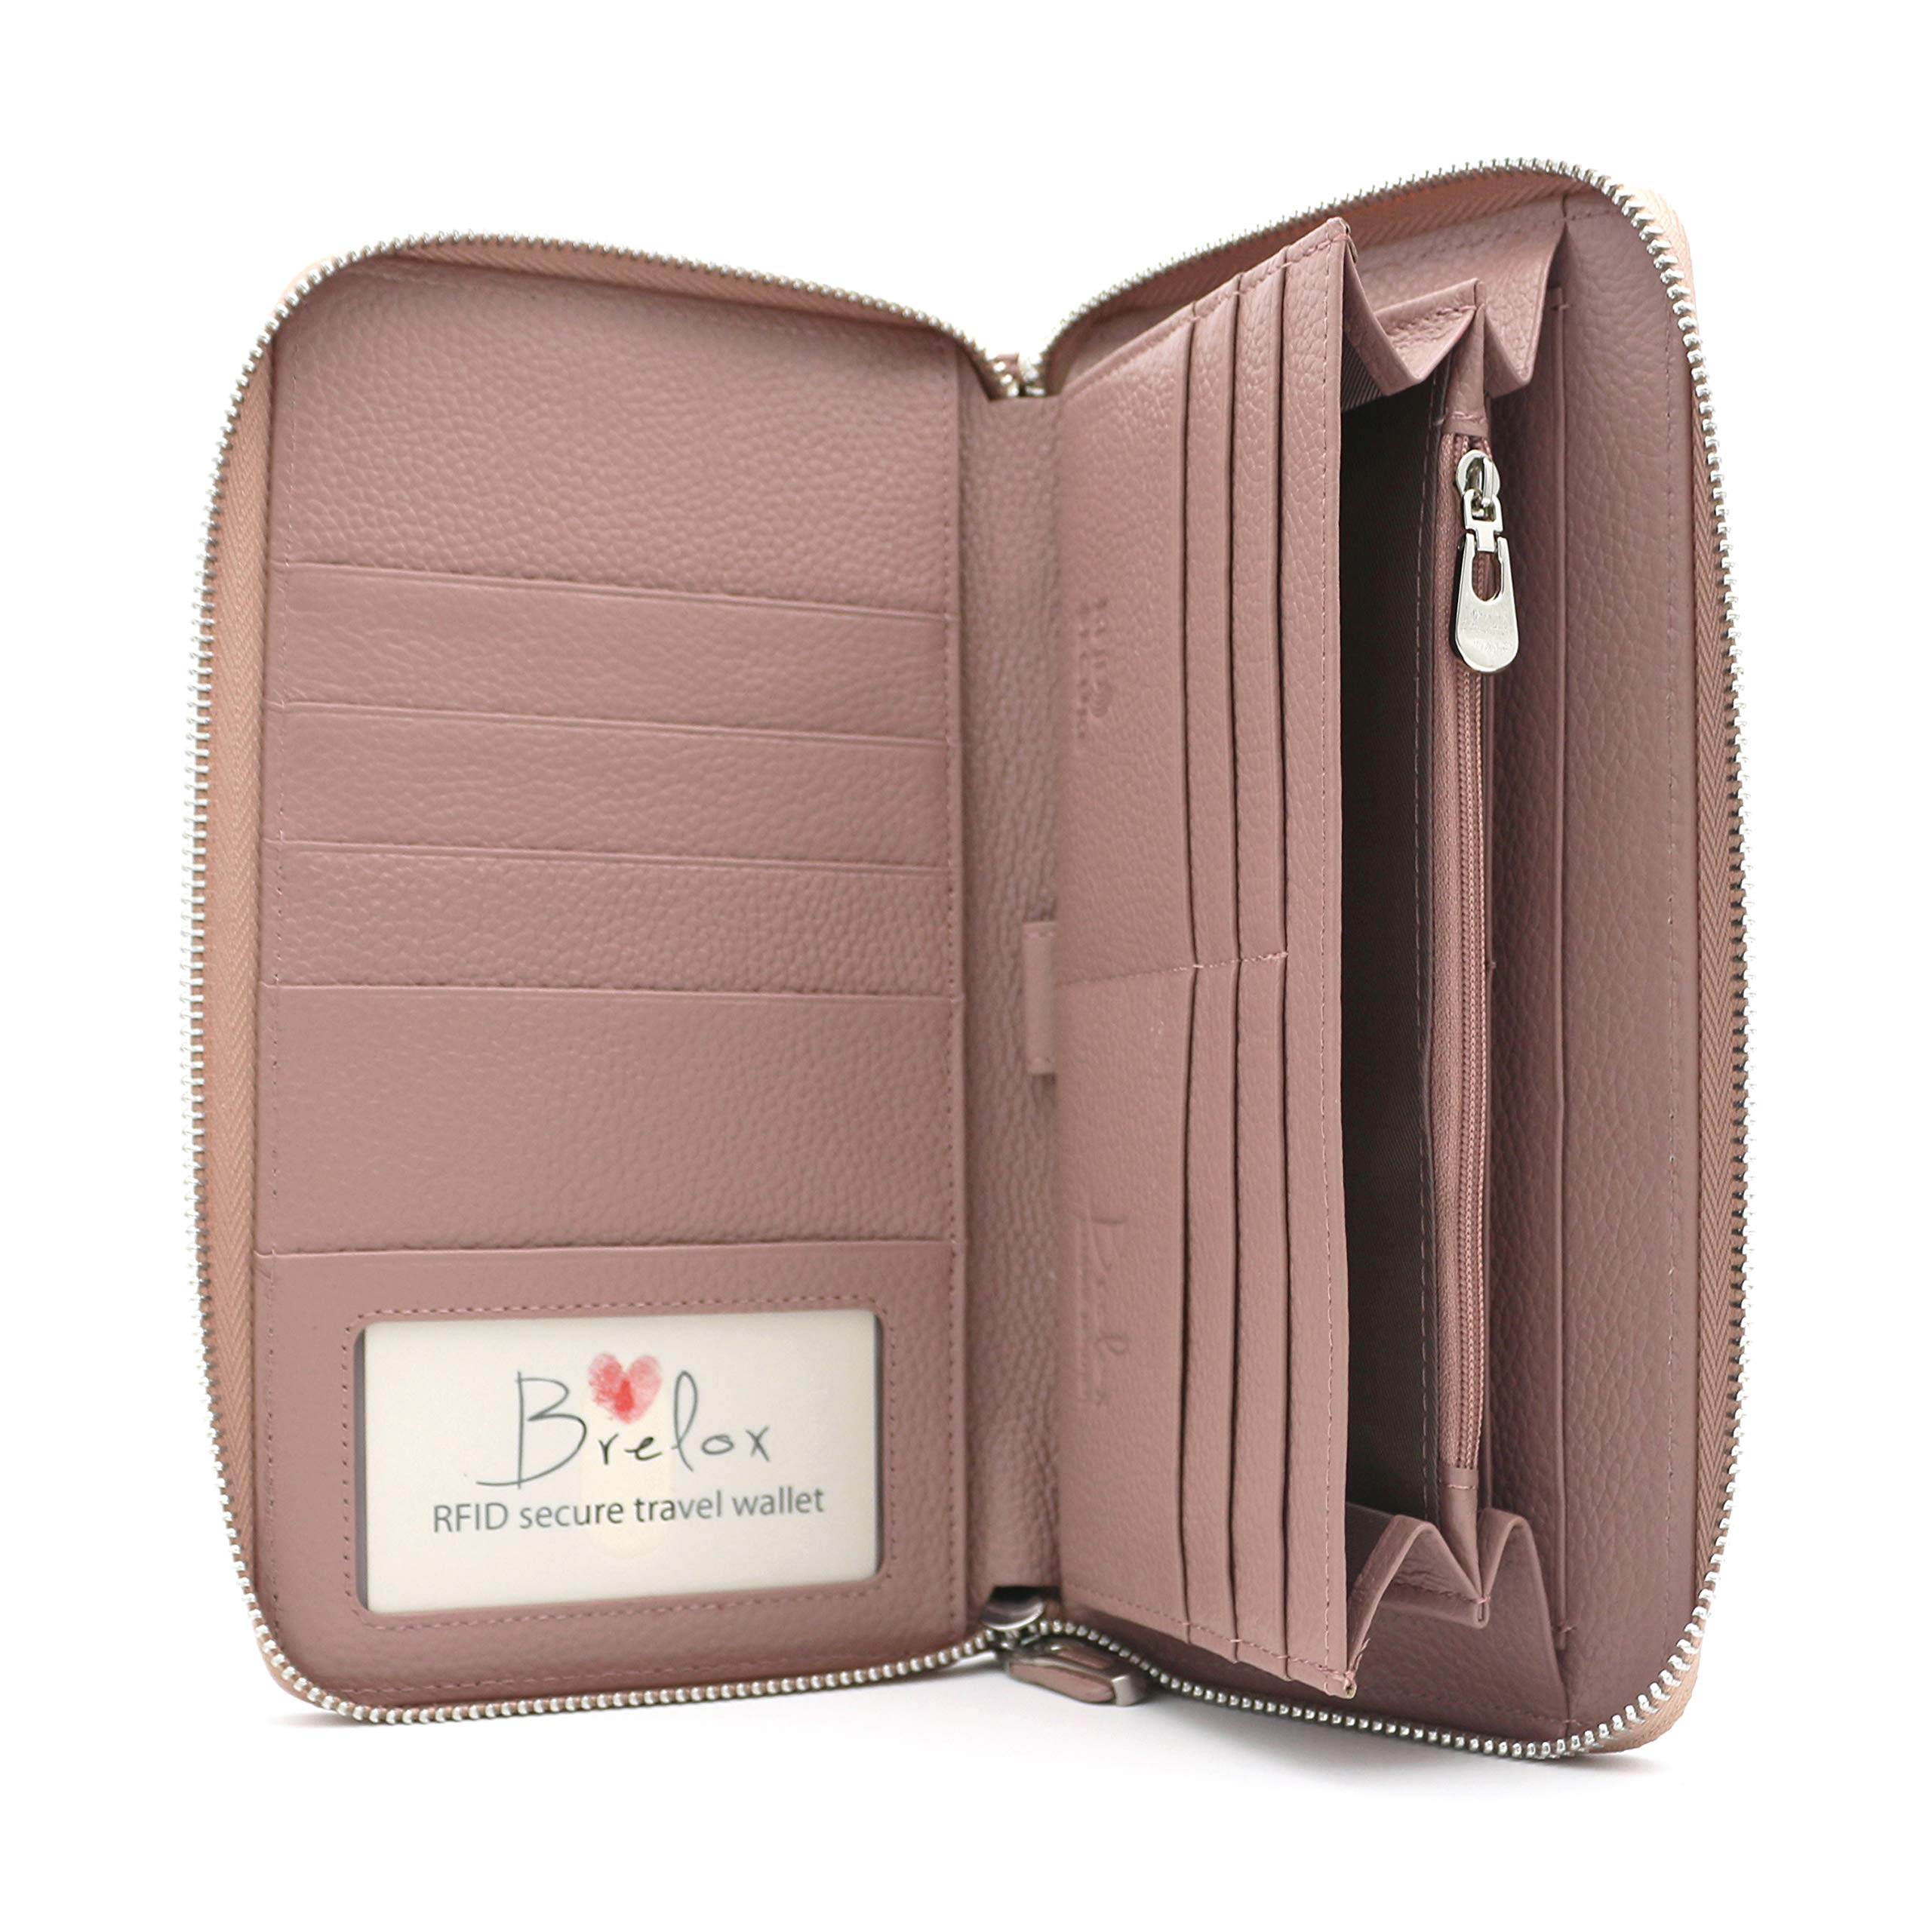 Brelox Travel Family Passport Holder Wallet - Pink - Genuine Leather - RFID Blocking - Zippered Organizer for Travel Documents - Passport Holder for 4 5 6 - ID Slot - Pockets for Cash & Boarding Pass by BRELOX GIFTS WITH PERSONALITY